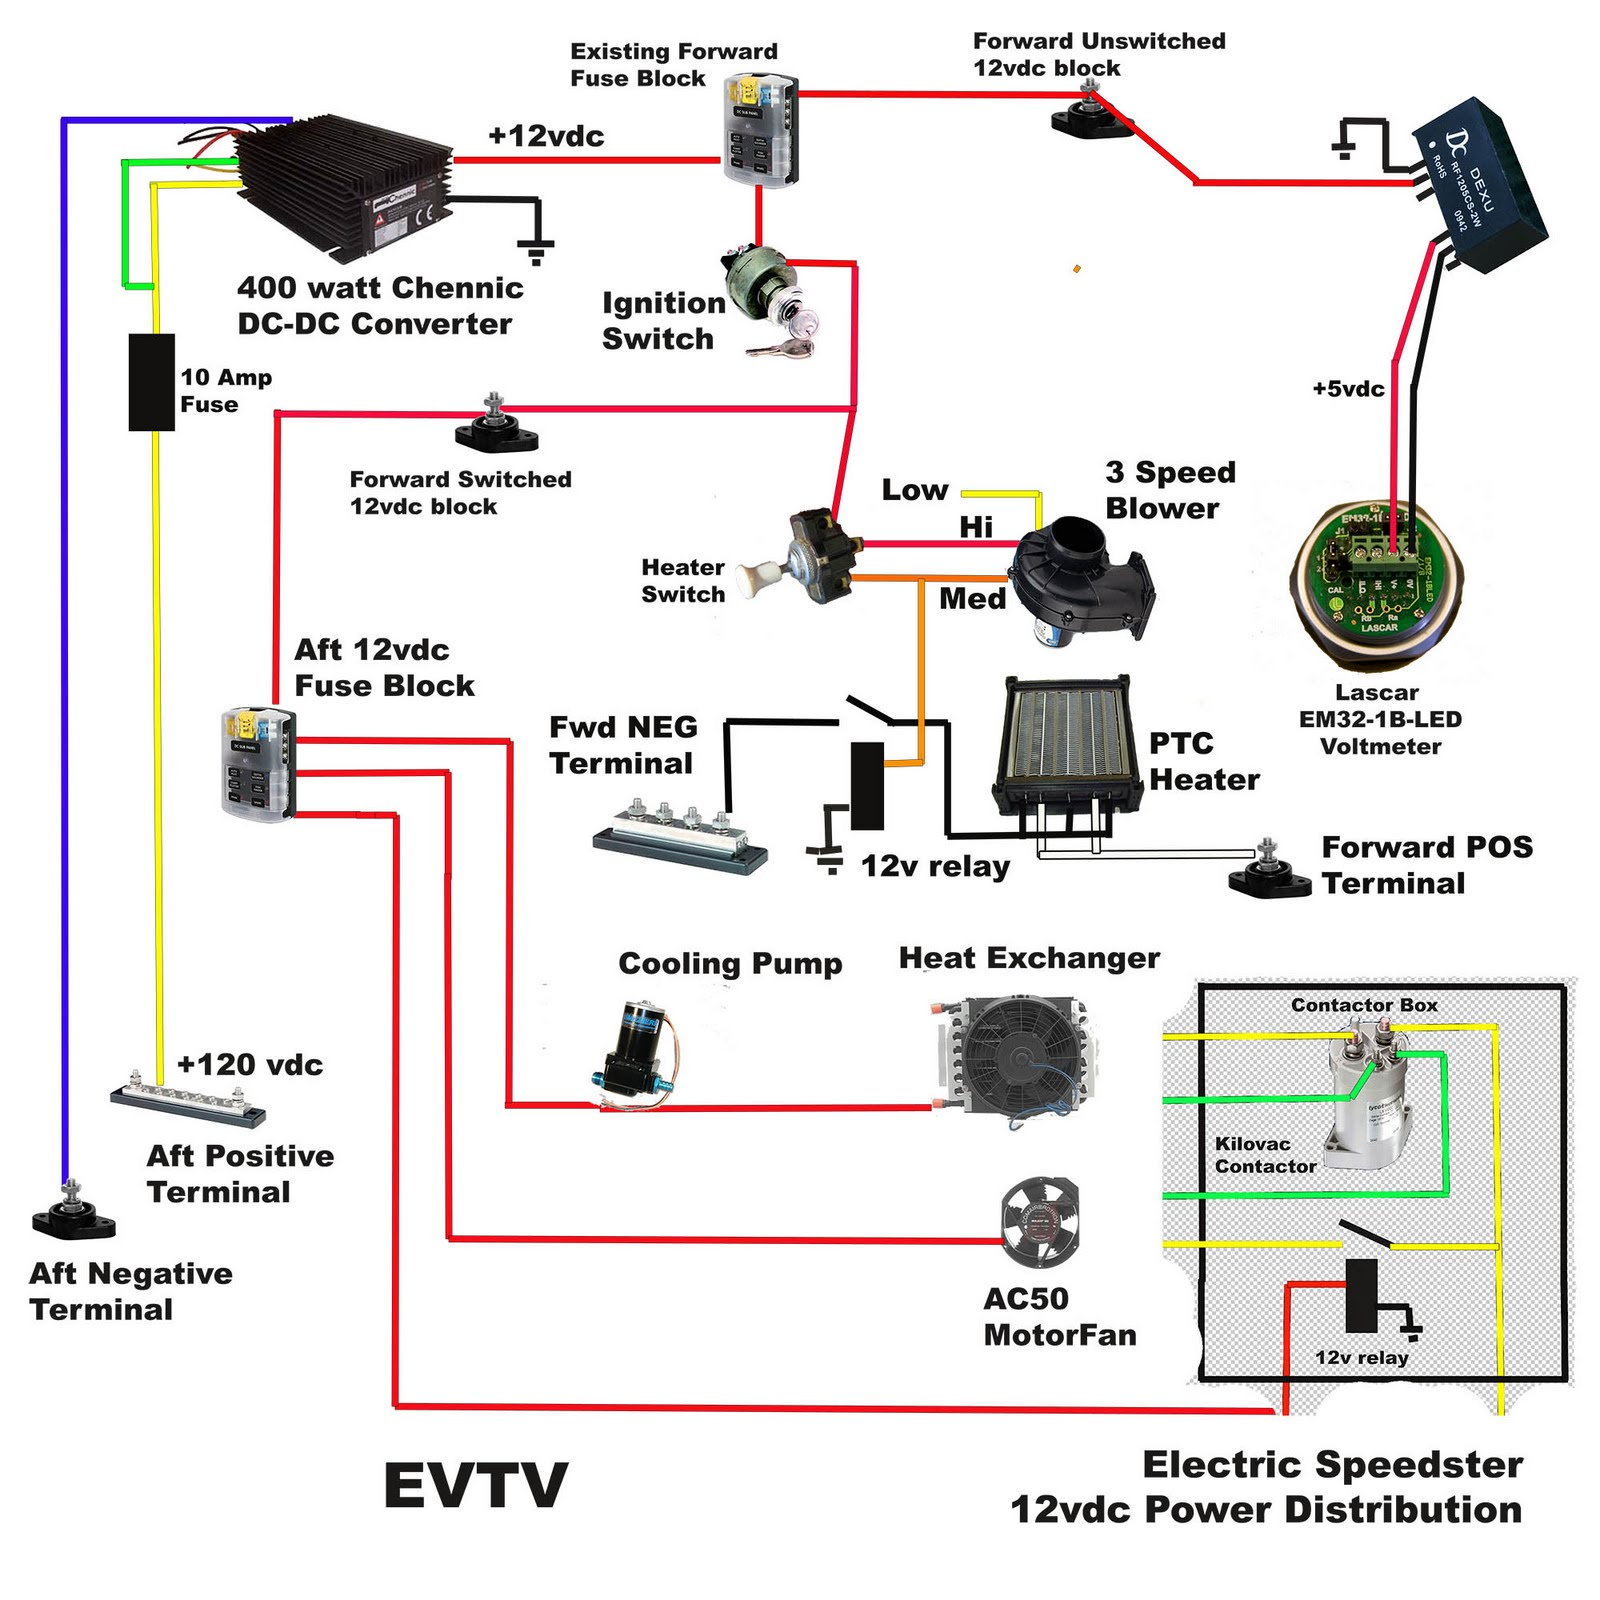 evtv me  speedster pictorial diagrams